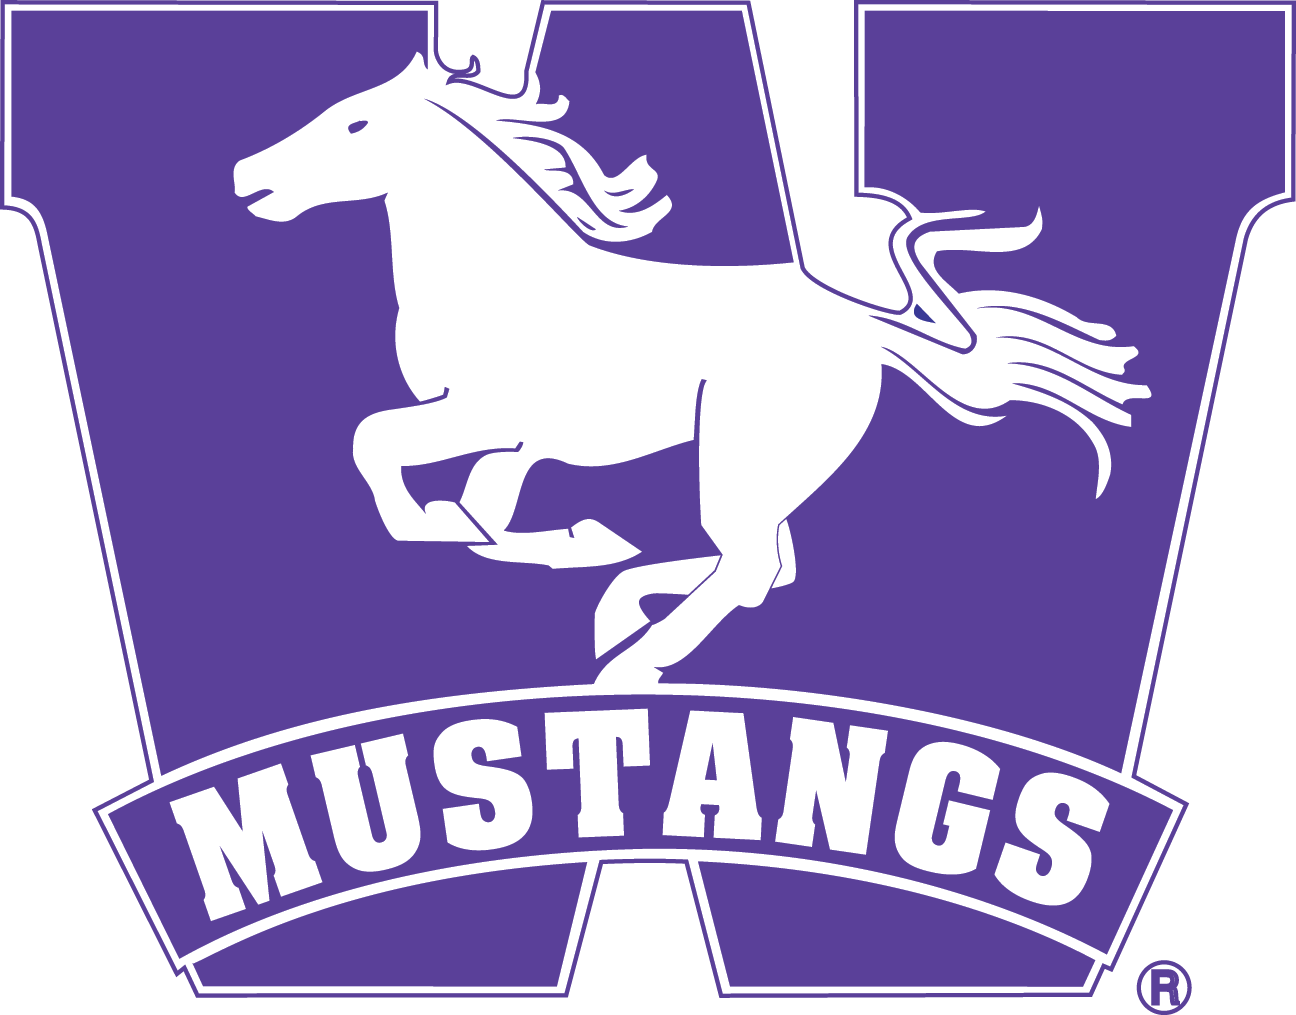 W transparent western. Mustang logo communications university